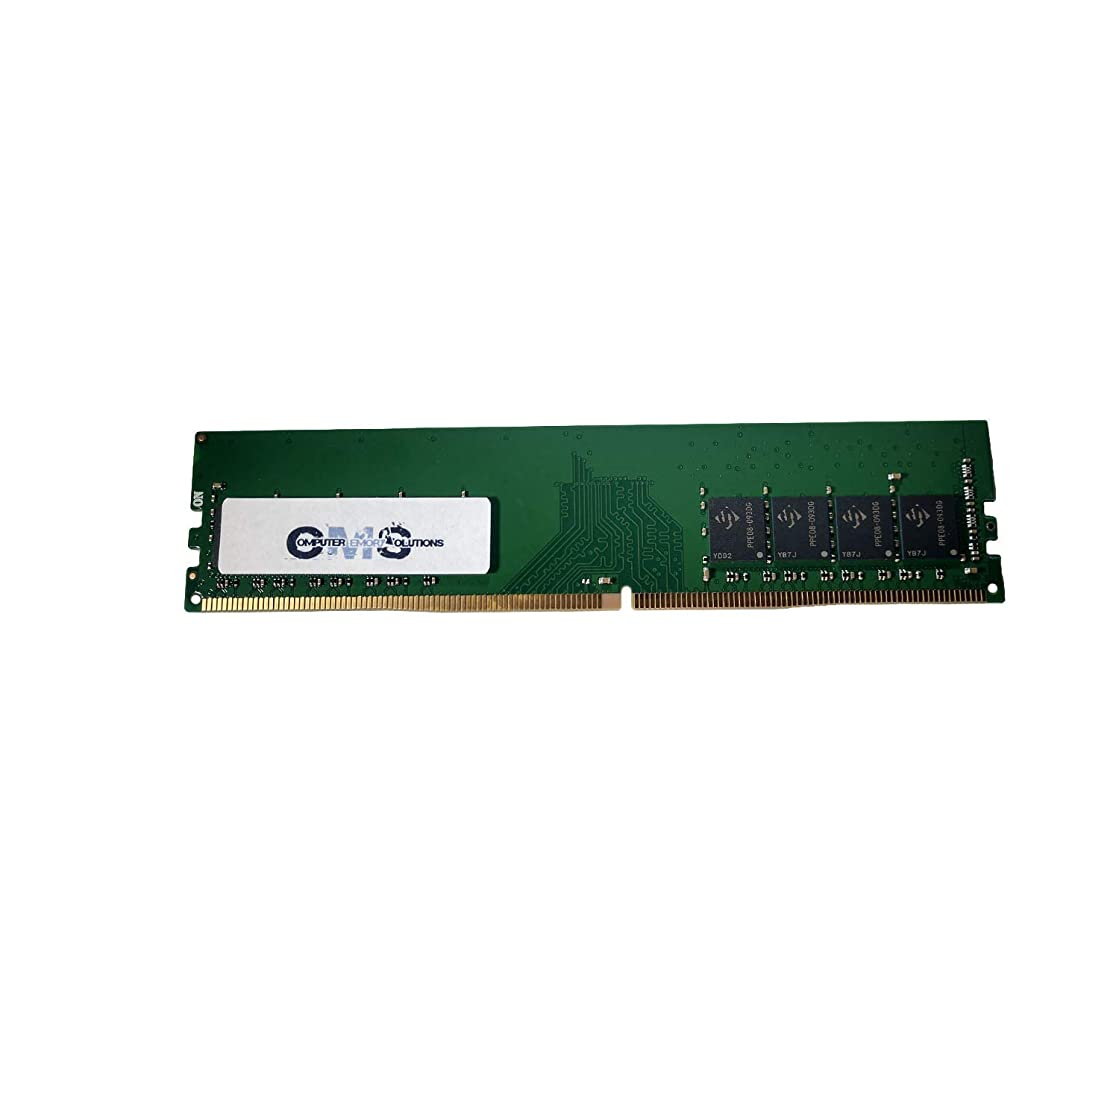 4Gb (1X4Gb) Memory Ram Compatible with Dell Xps 8900 Desktop/Special Edition By CMS C71